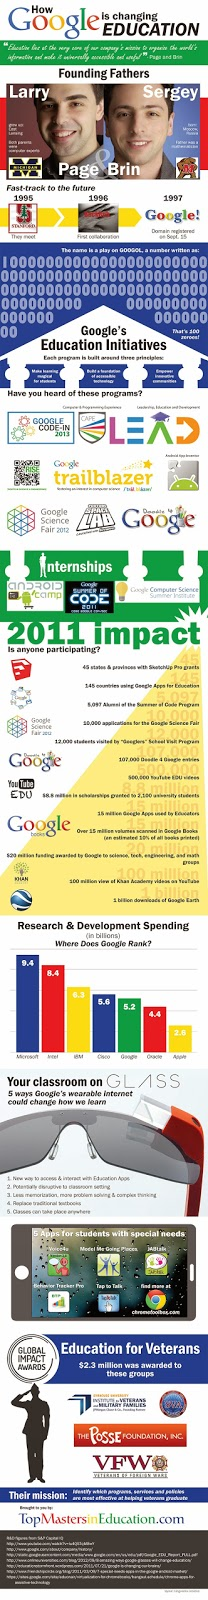 Infographic - Education - How Google is Changing Education